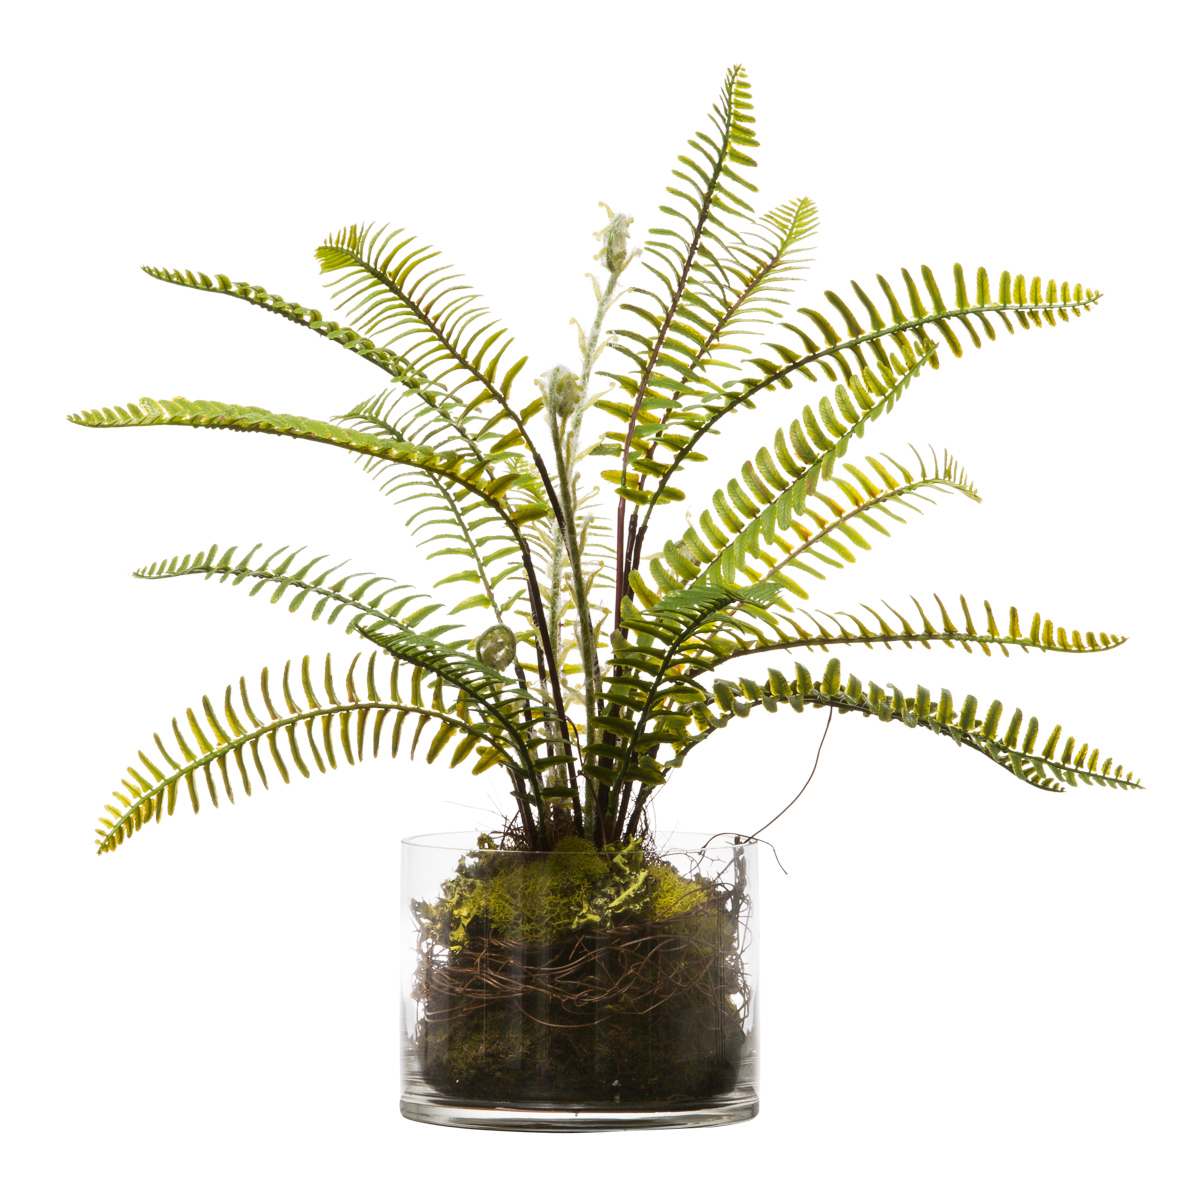 WOODLAND FERN IN GLASS CYLINDER